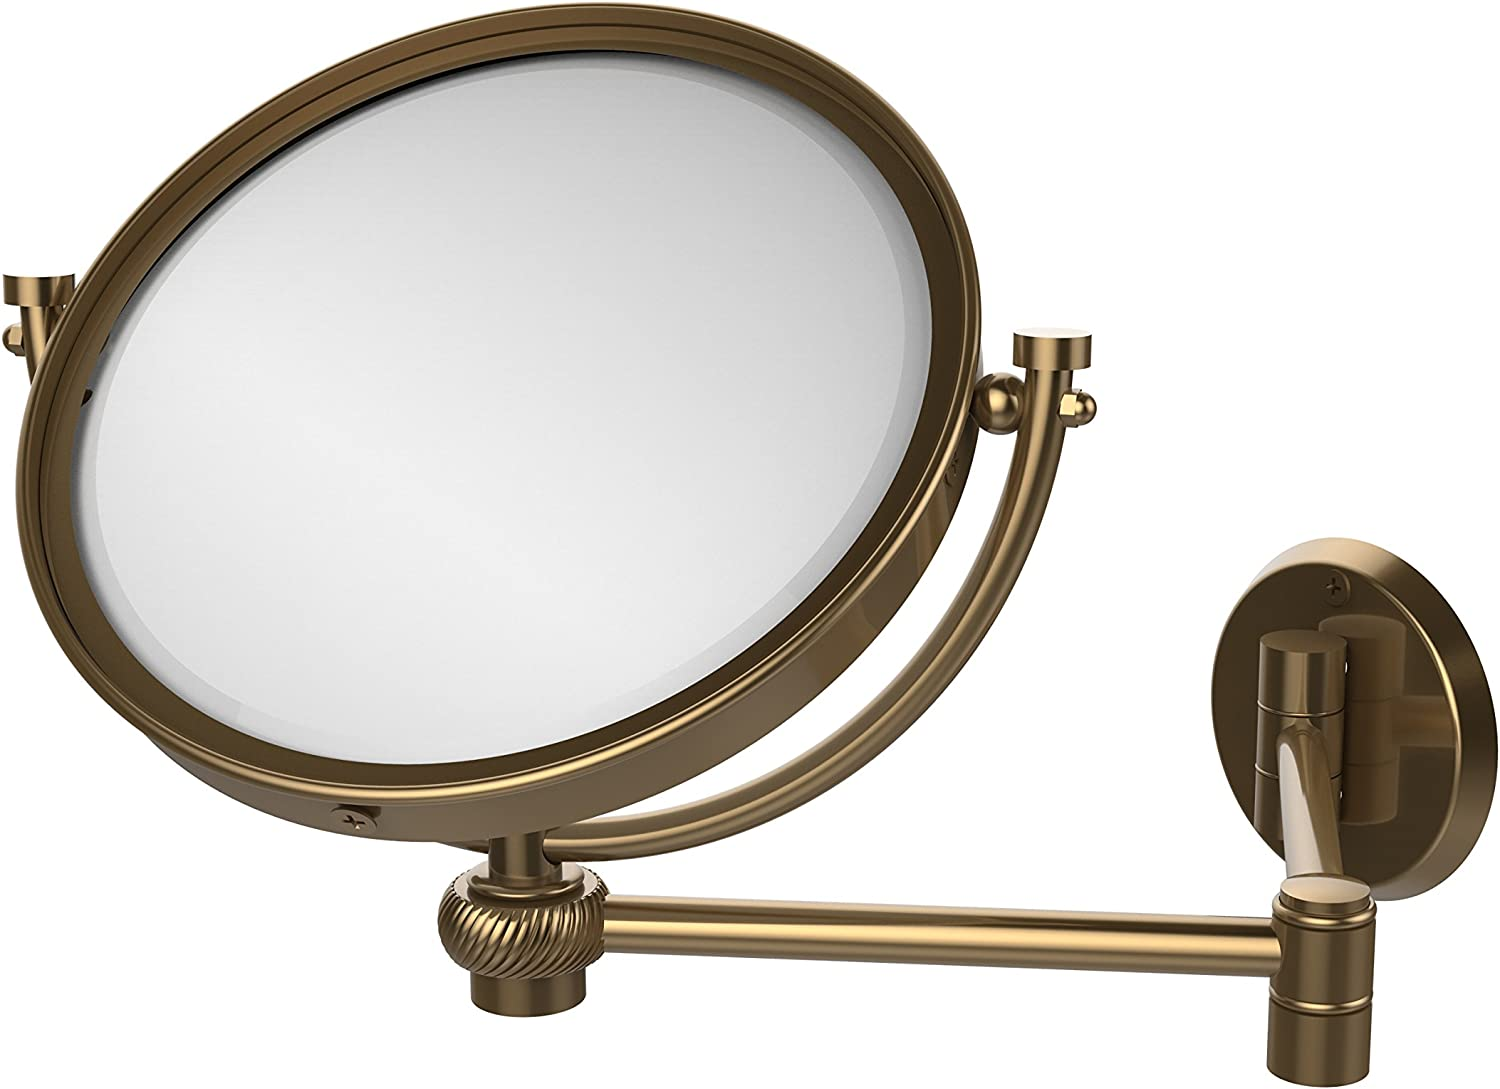 Allied Brass WM-6T 5X-BBR 8-Inch Wall Mirror with 5x Magnification, Extends Up to 14-Inch, Brushed Bronze